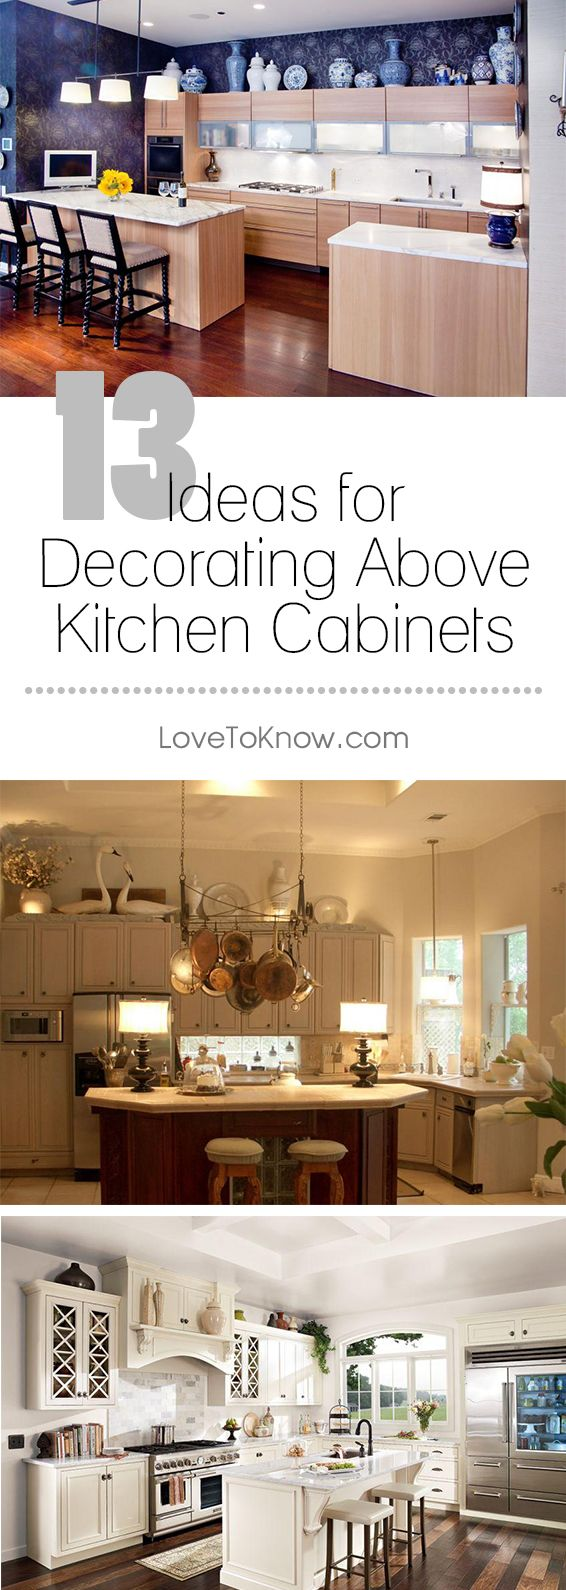 best 25+ above kitchen cabinets ideas on pinterest | closed